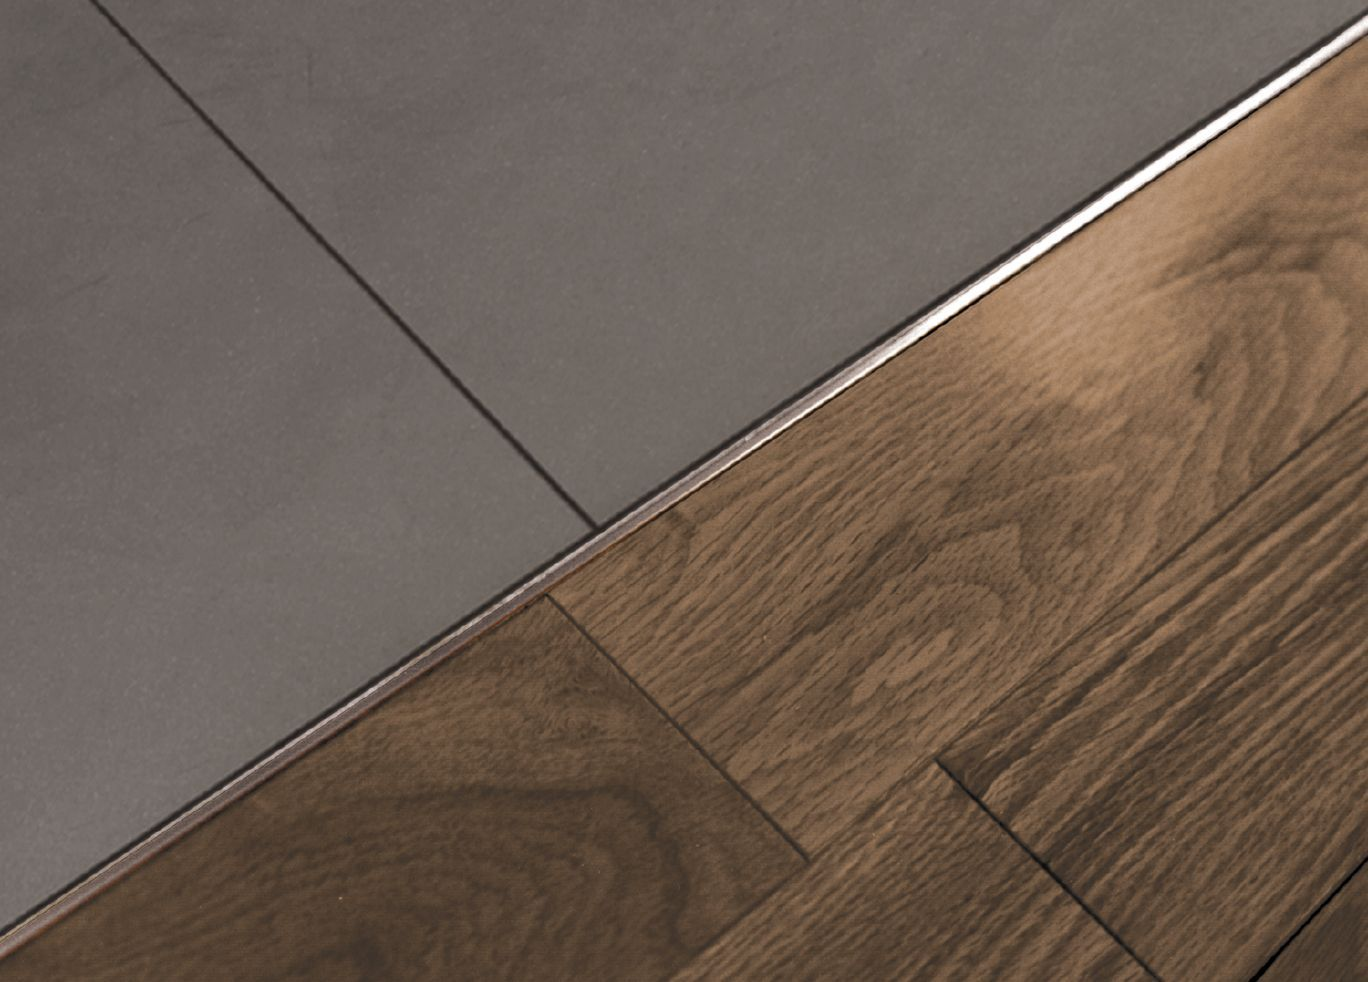 Schluter Schiene Aluminum Material But Available In Satin Chrome Or Satin Nickel Finis Tile To Wood Transition Carpet To Tile Transition Transition Flooring